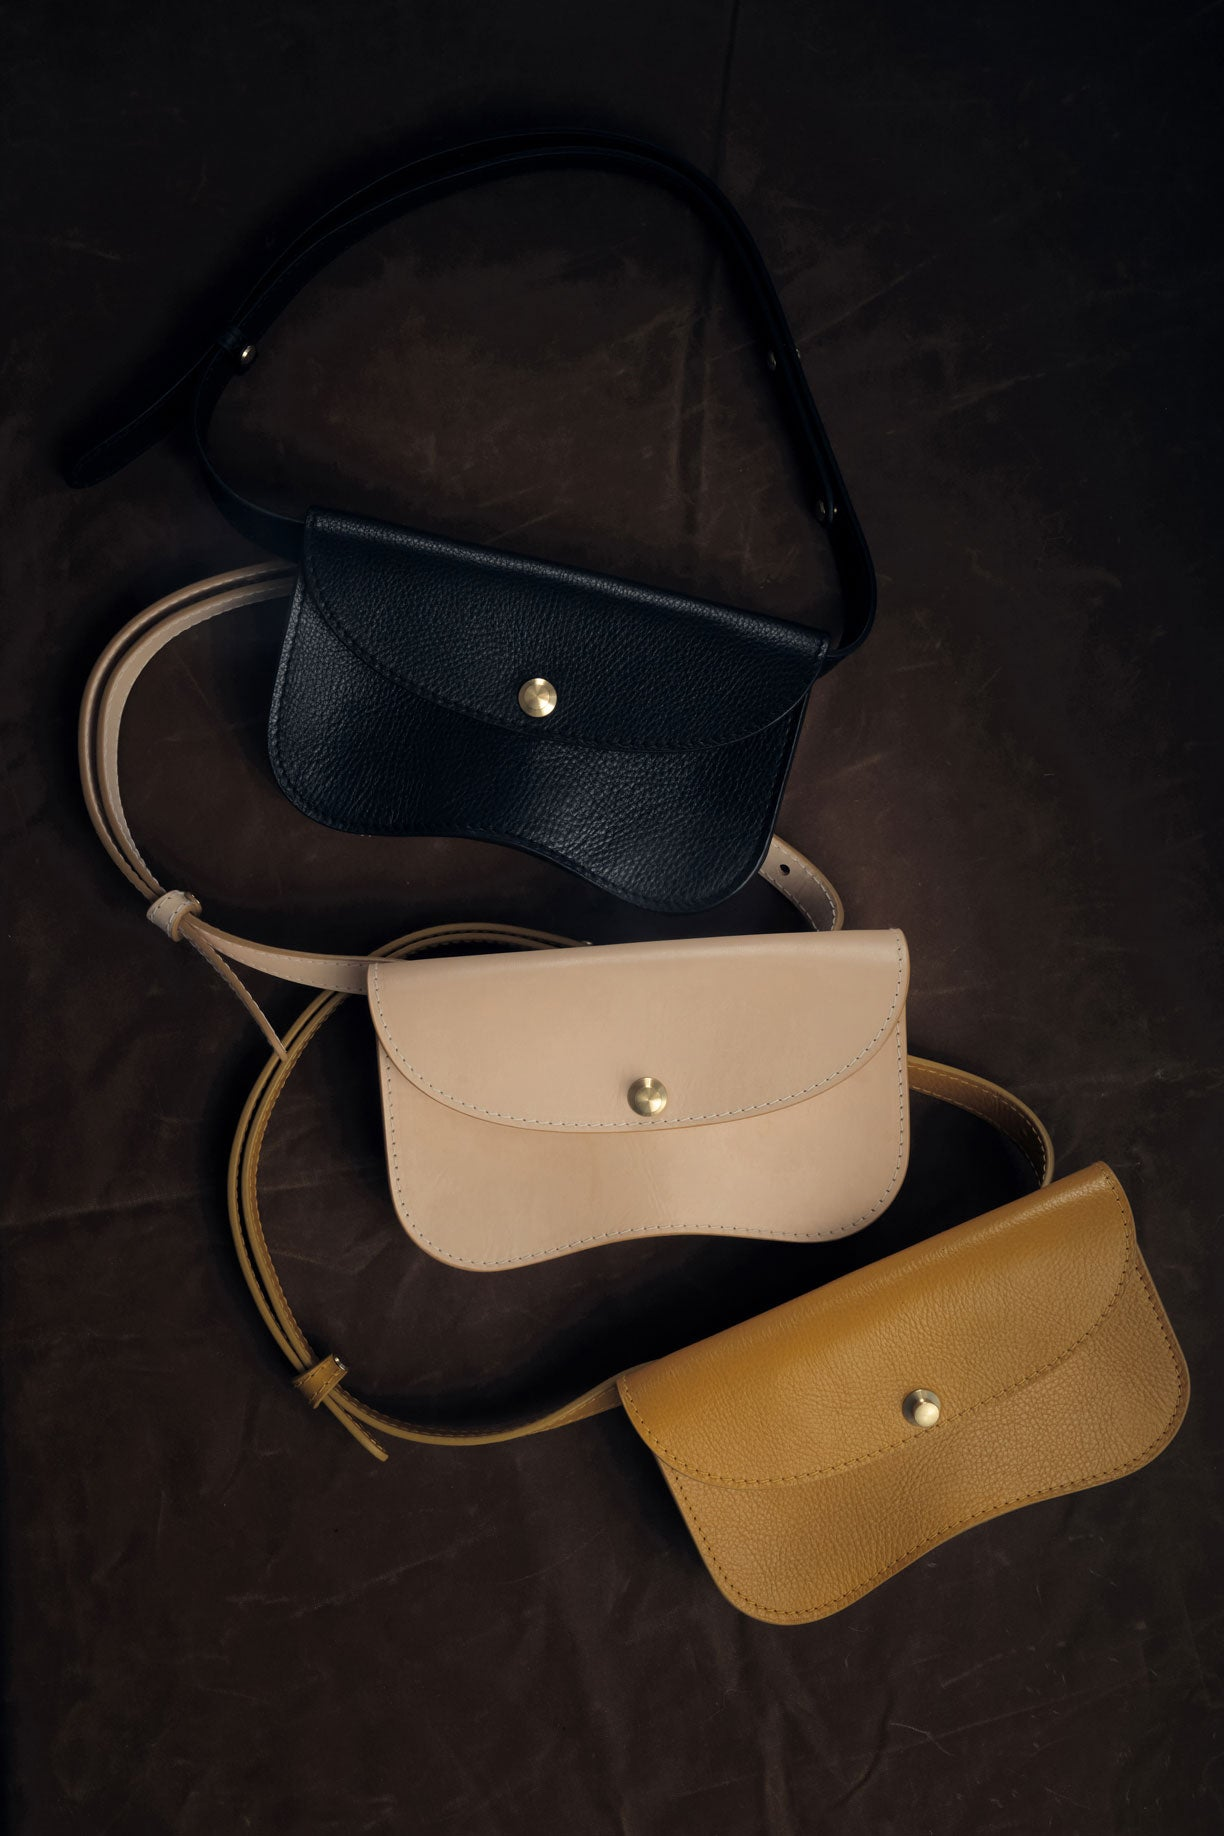 Faba sling style leather bag